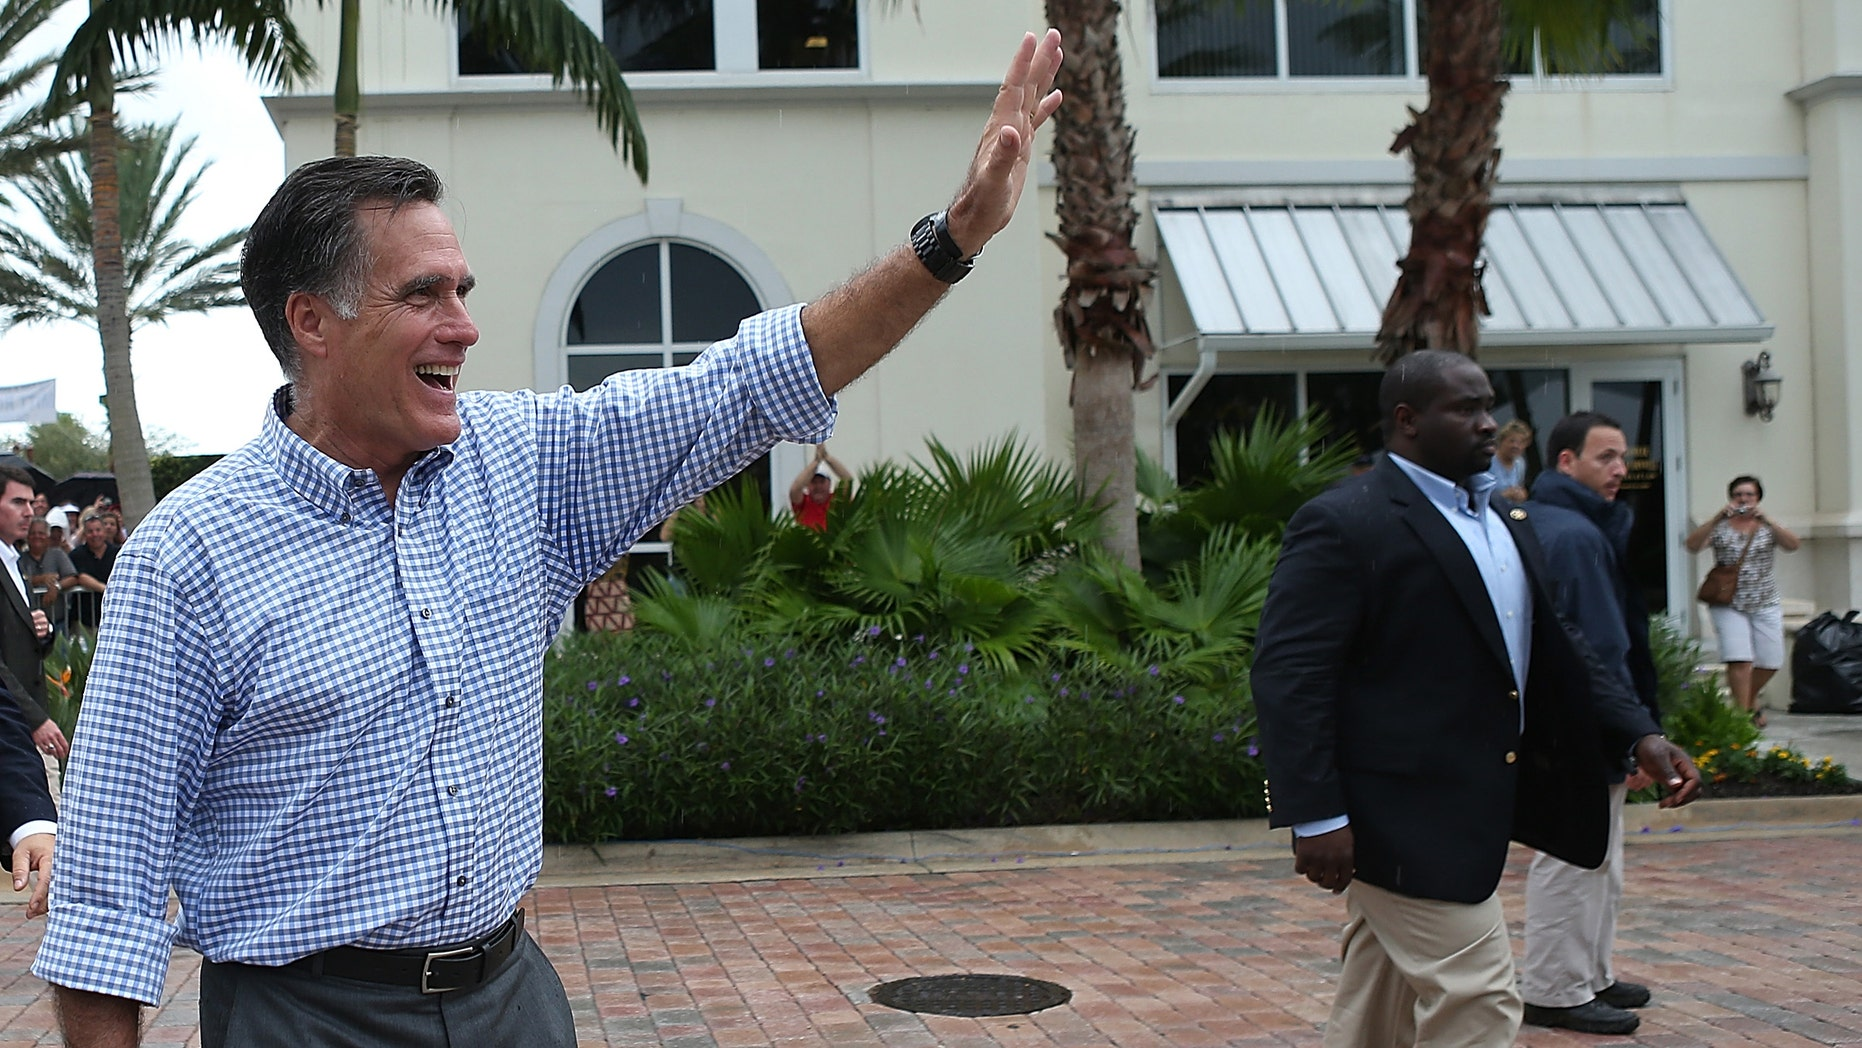 Republican presidential candidate Mitt Romney waves to supporters after a victory rally at Tradition Town Square on October 7, 2012 in Port St. Lucie, Florida.